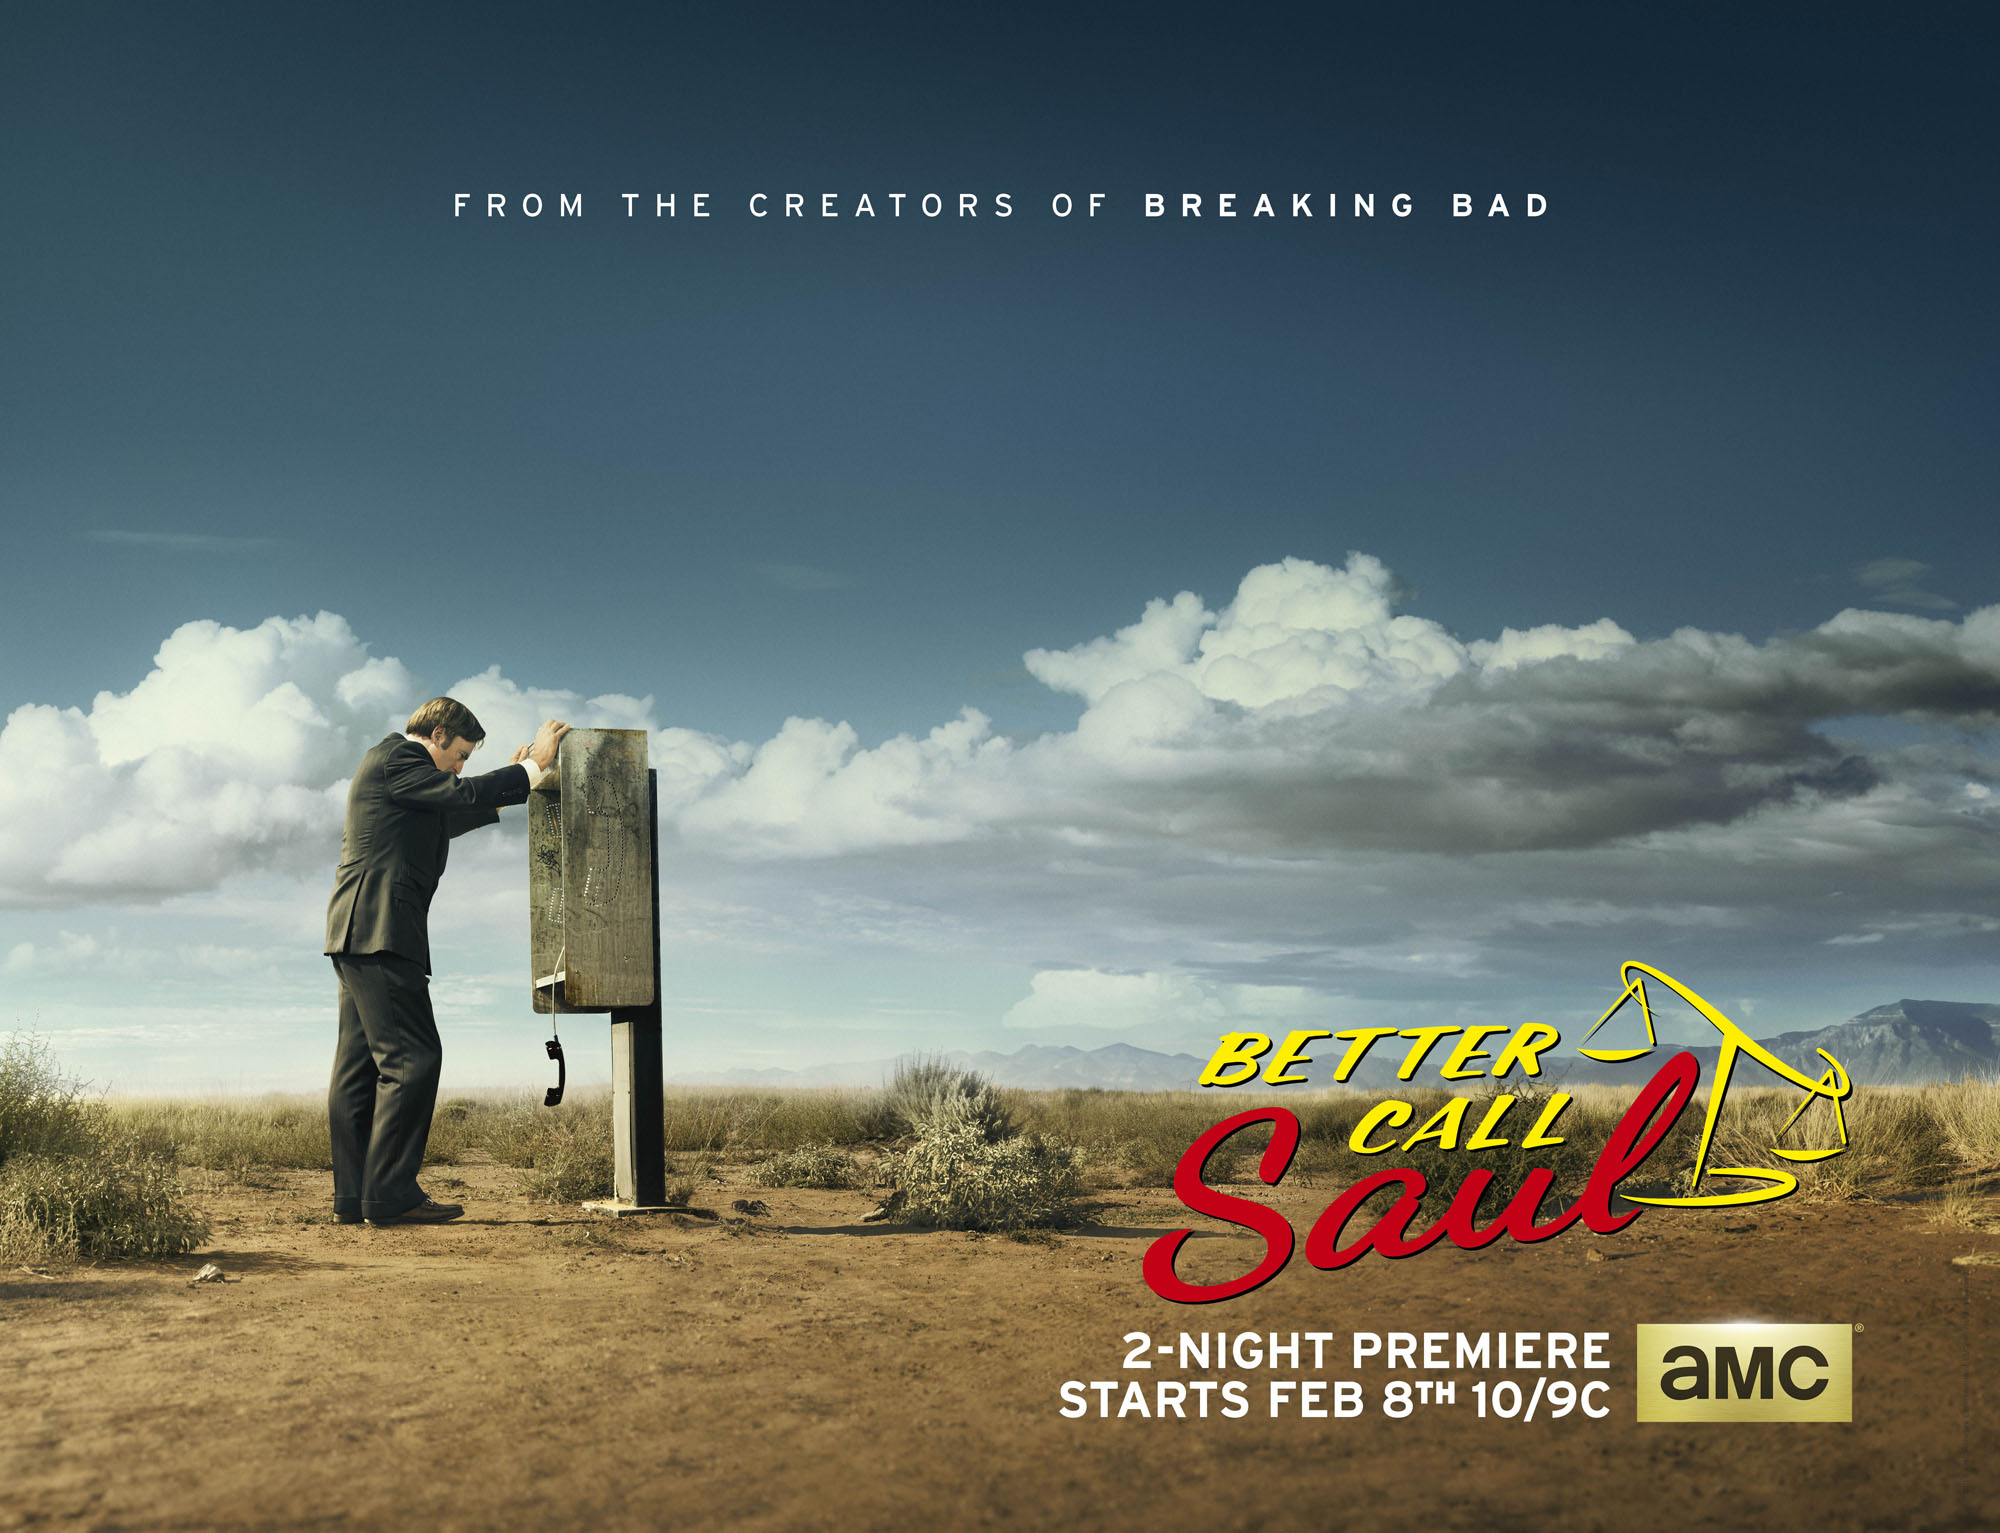 Better Call Saul Wallpapers Pictures Images 2000x1533